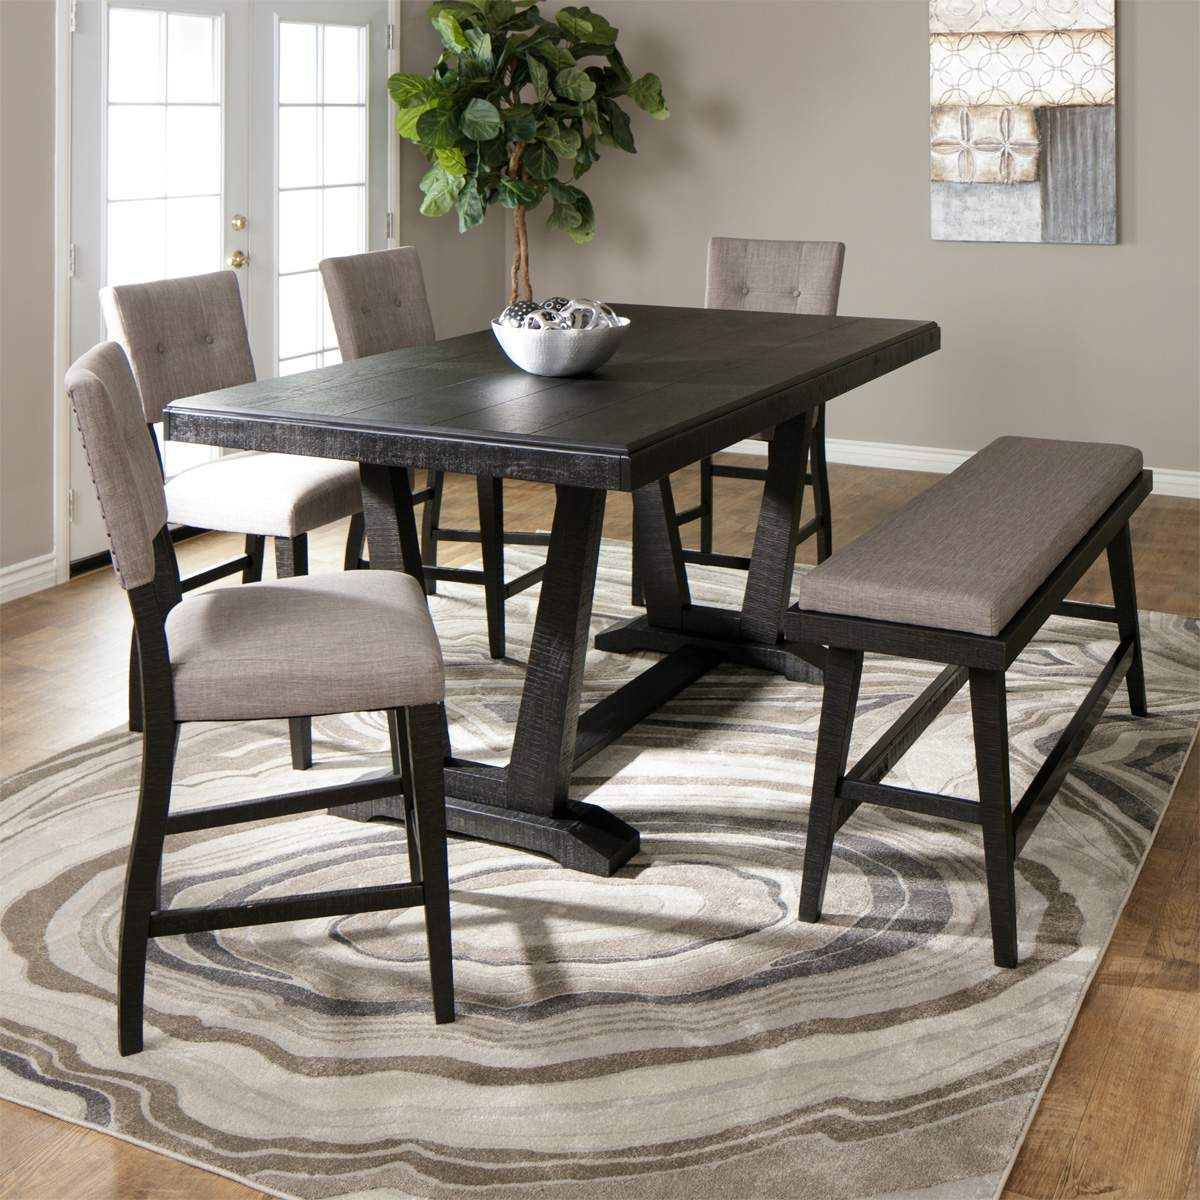 Excellent Hampton My Home In 2019 Dining Room Furniture Sets Squirreltailoven Fun Painted Chair Ideas Images Squirreltailovenorg